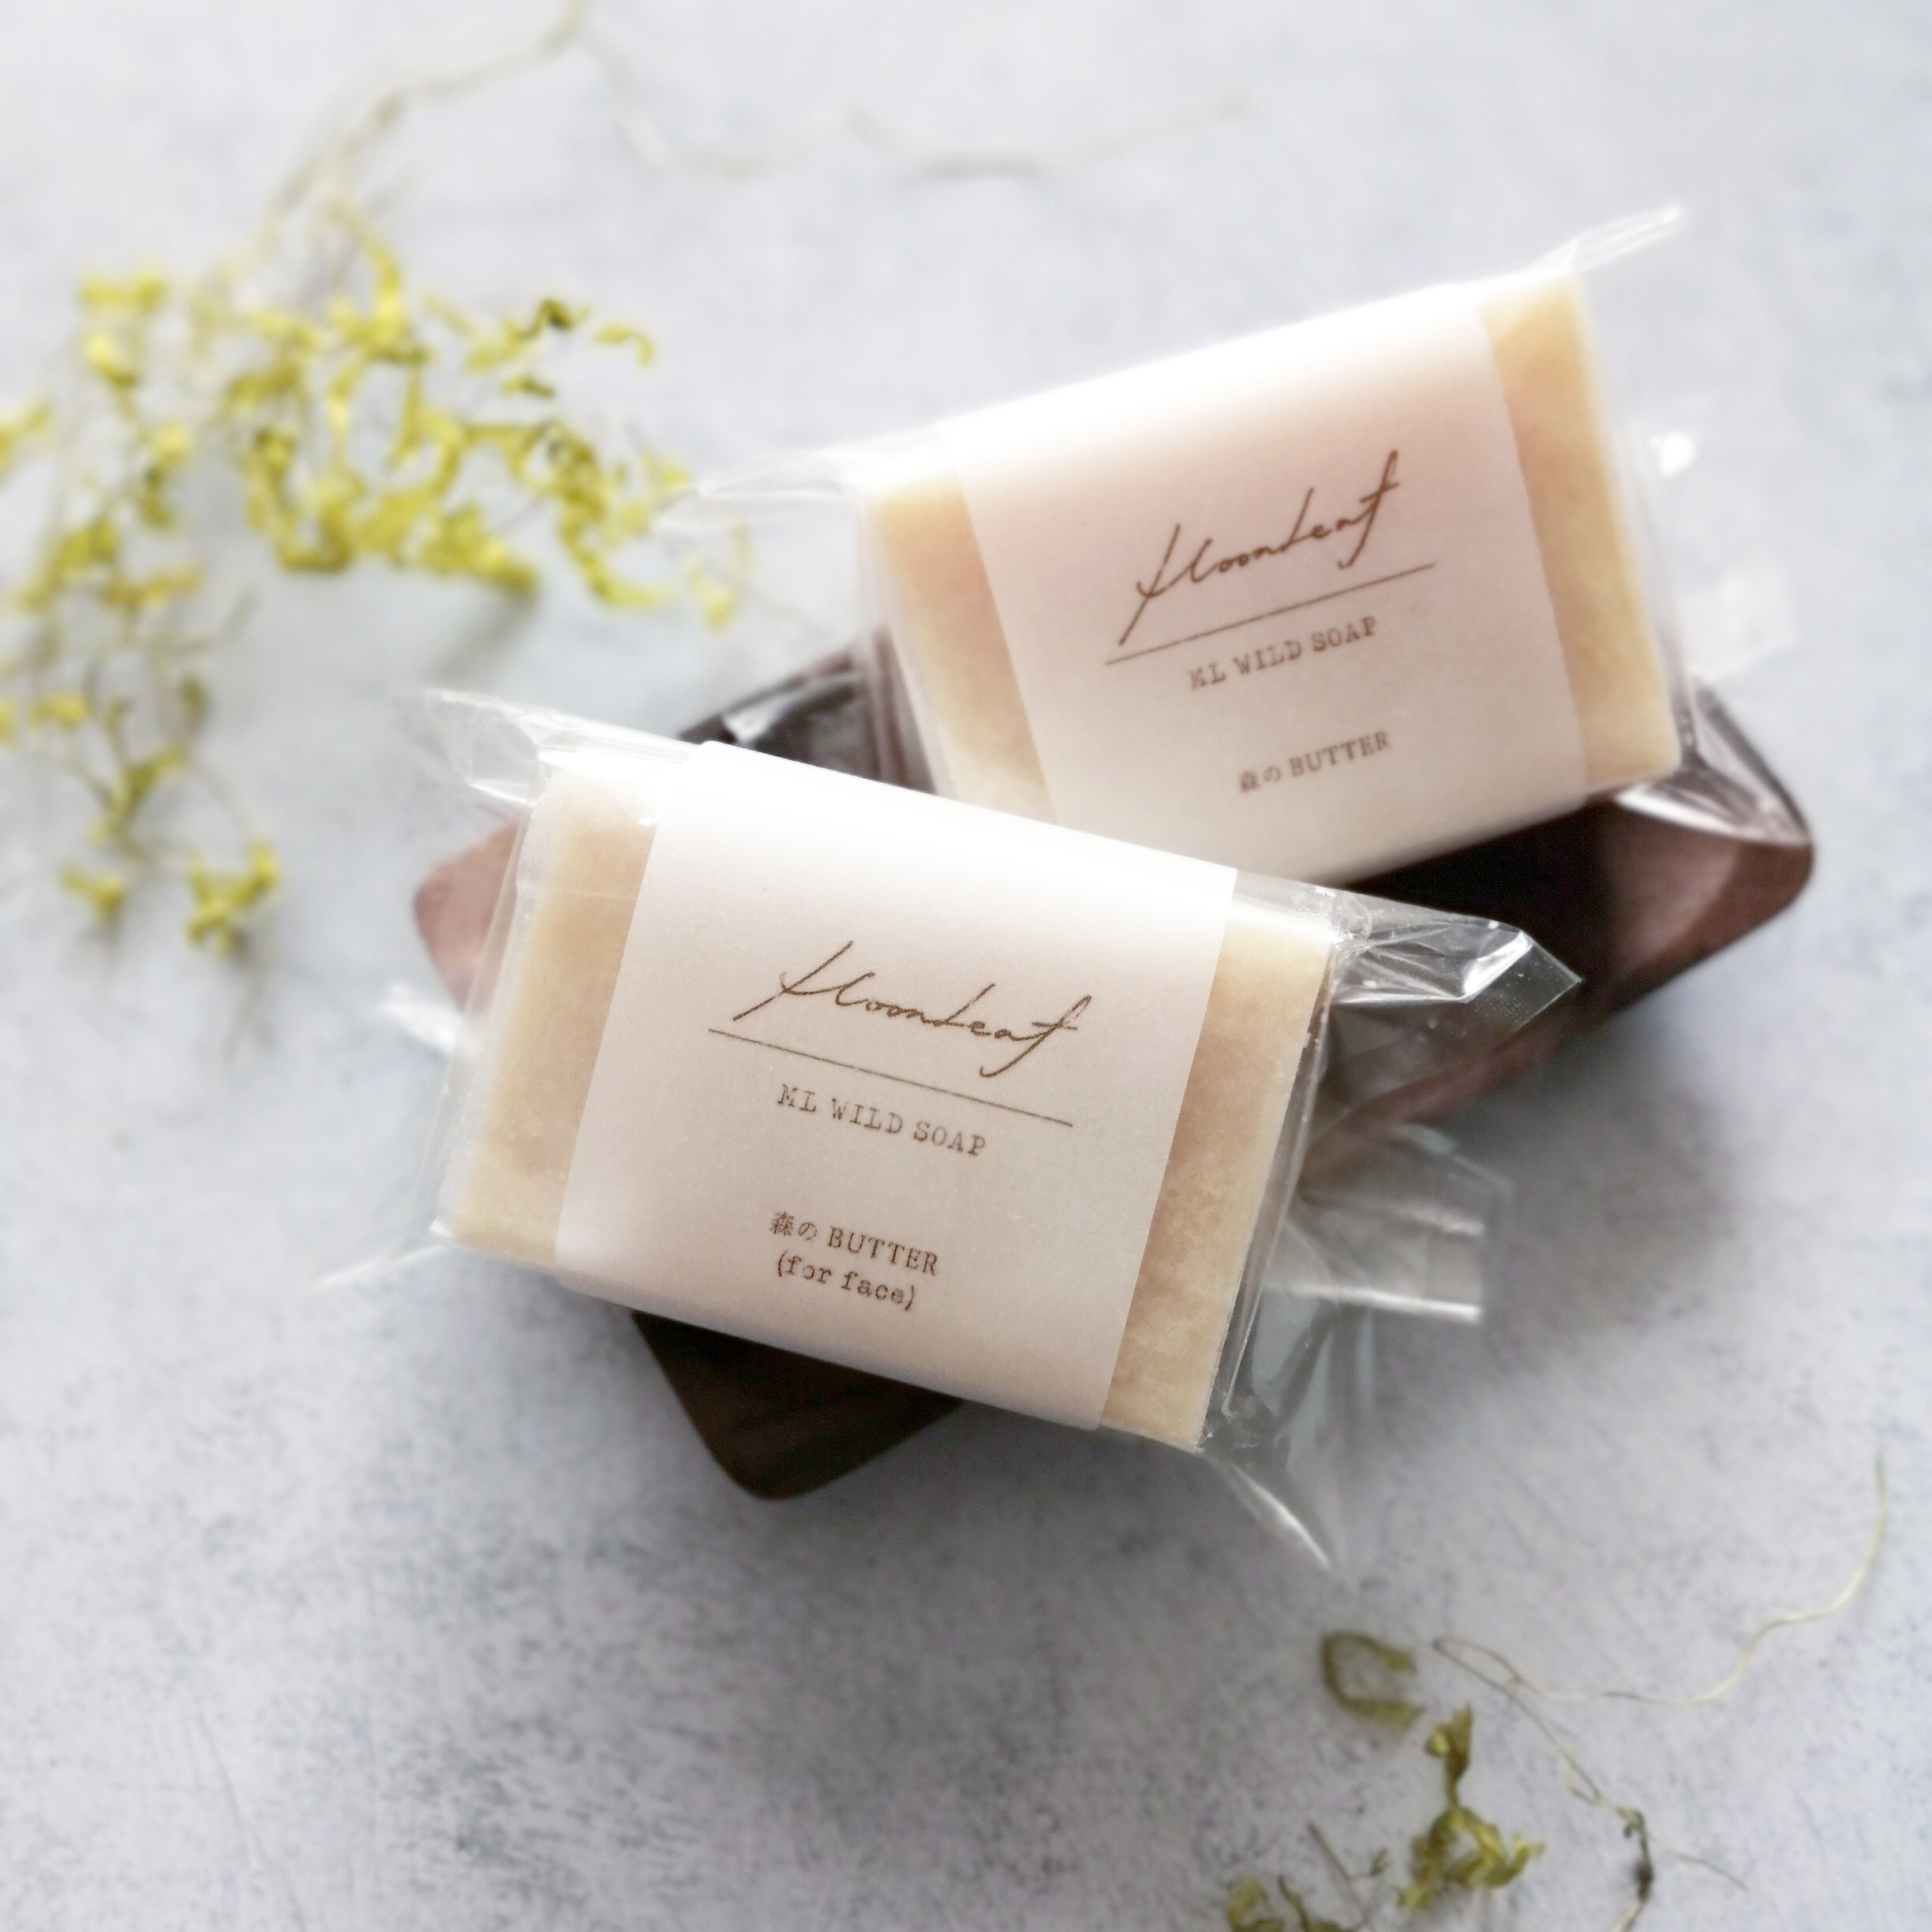 ML WILD SOAP (HONEY)